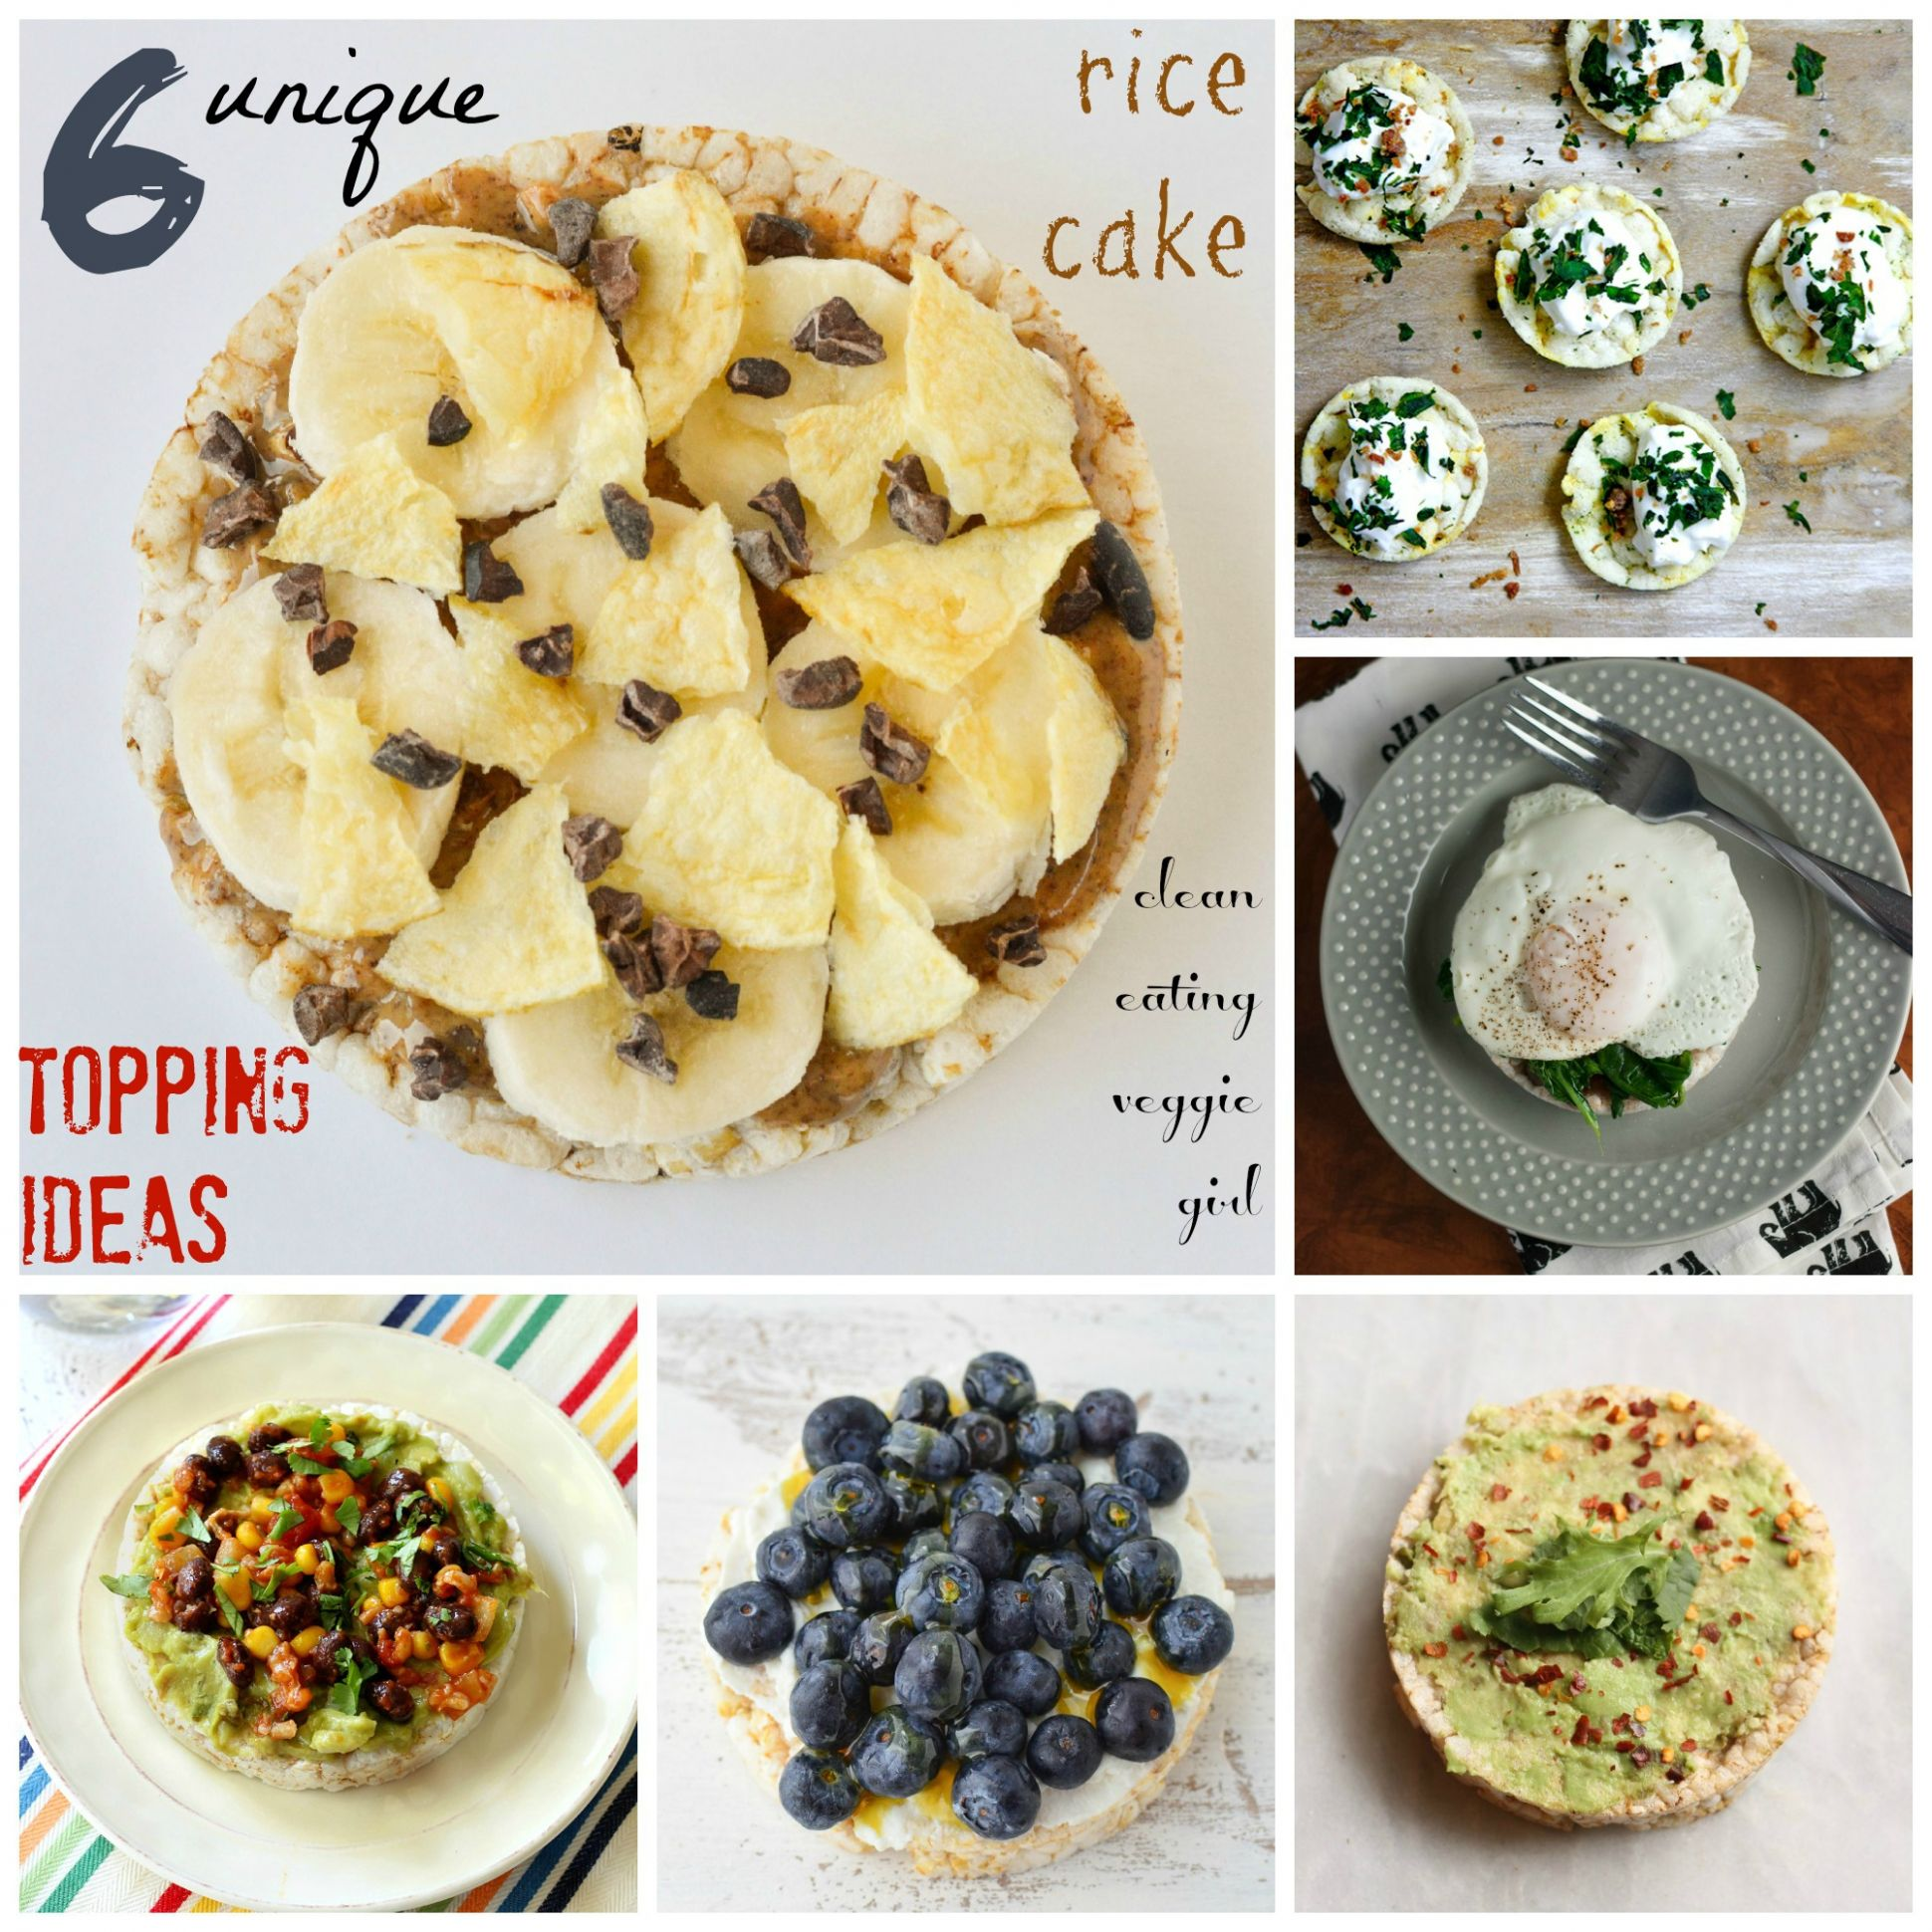 10 Unique Rice Cake Topping Ideas